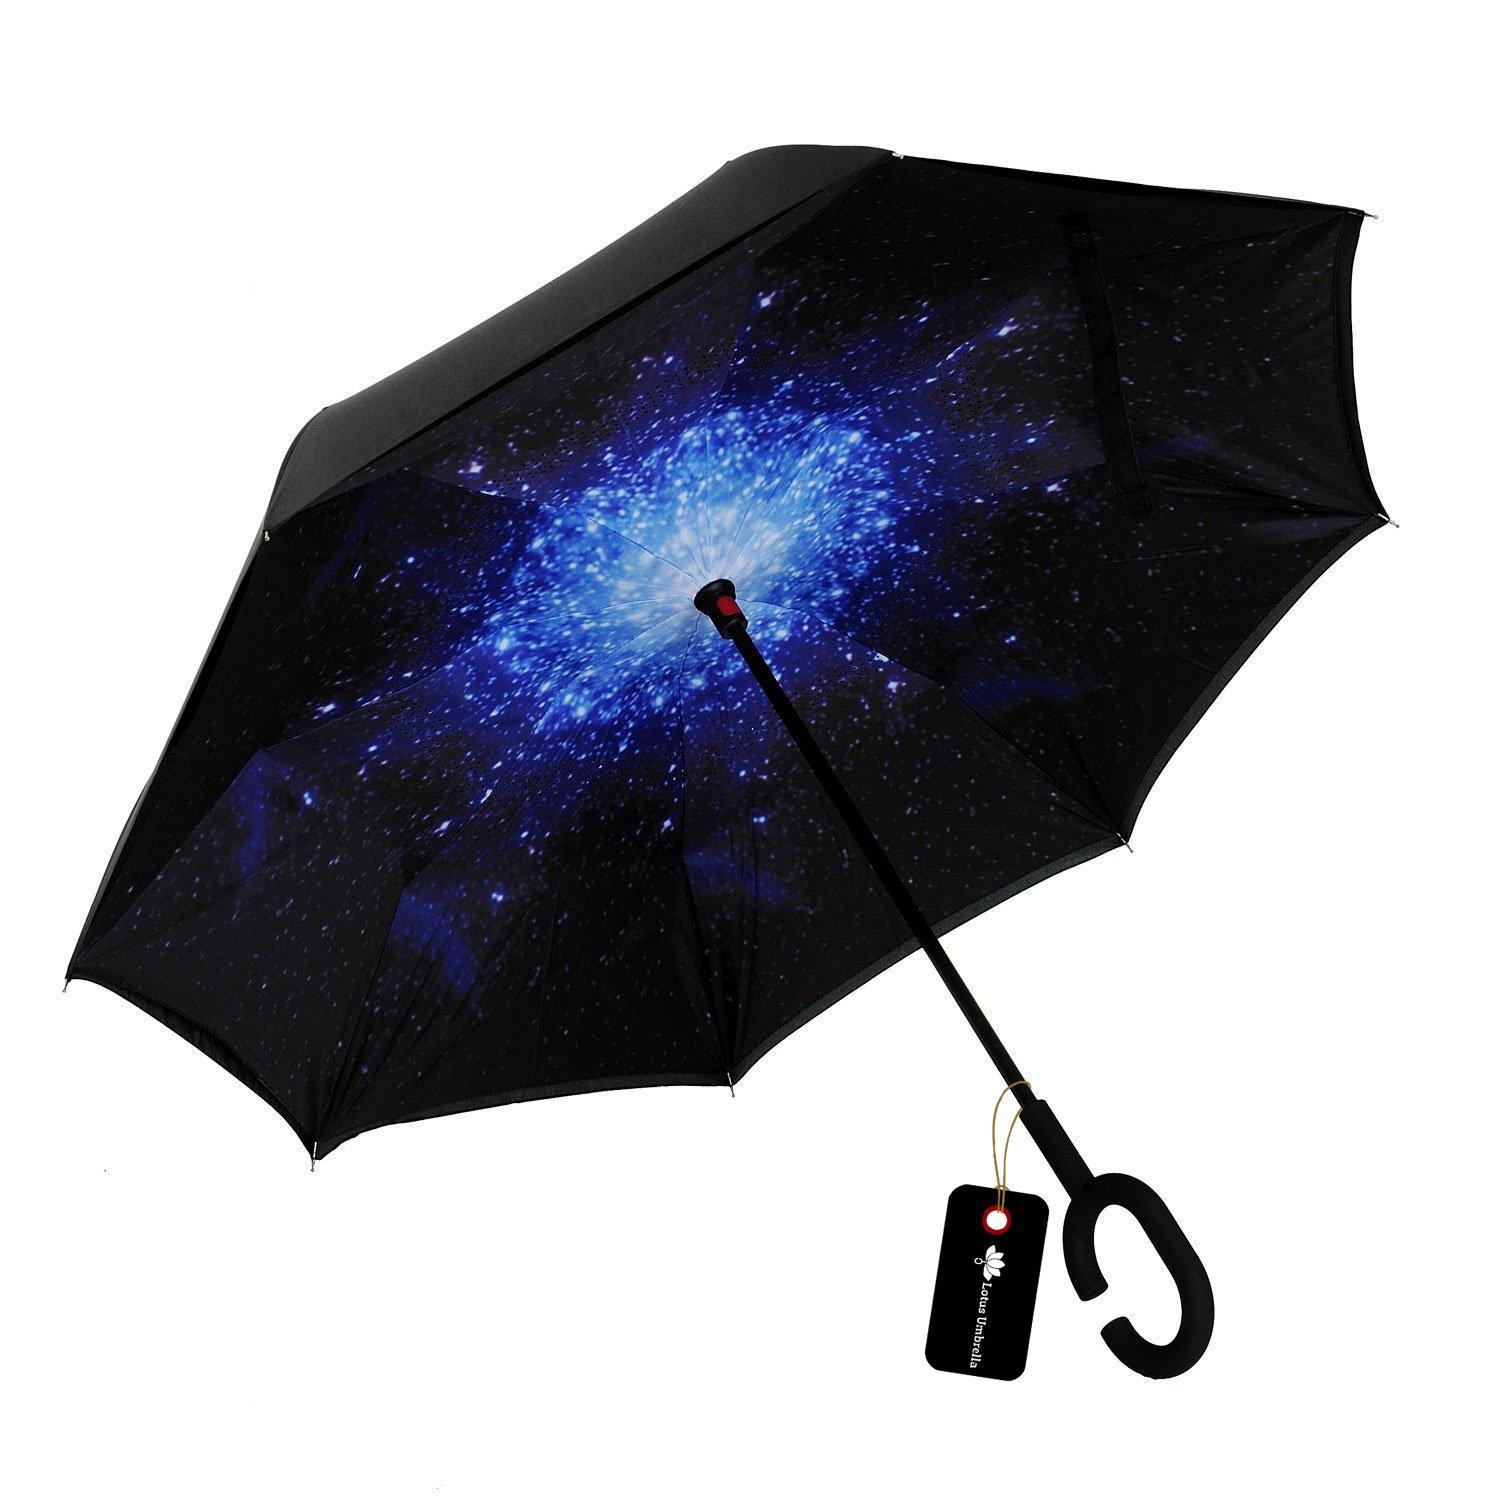 Inverted Umbrella Cars Reverse Folding Double Layer Windproof Inside Out Outdoor Rain Away Car